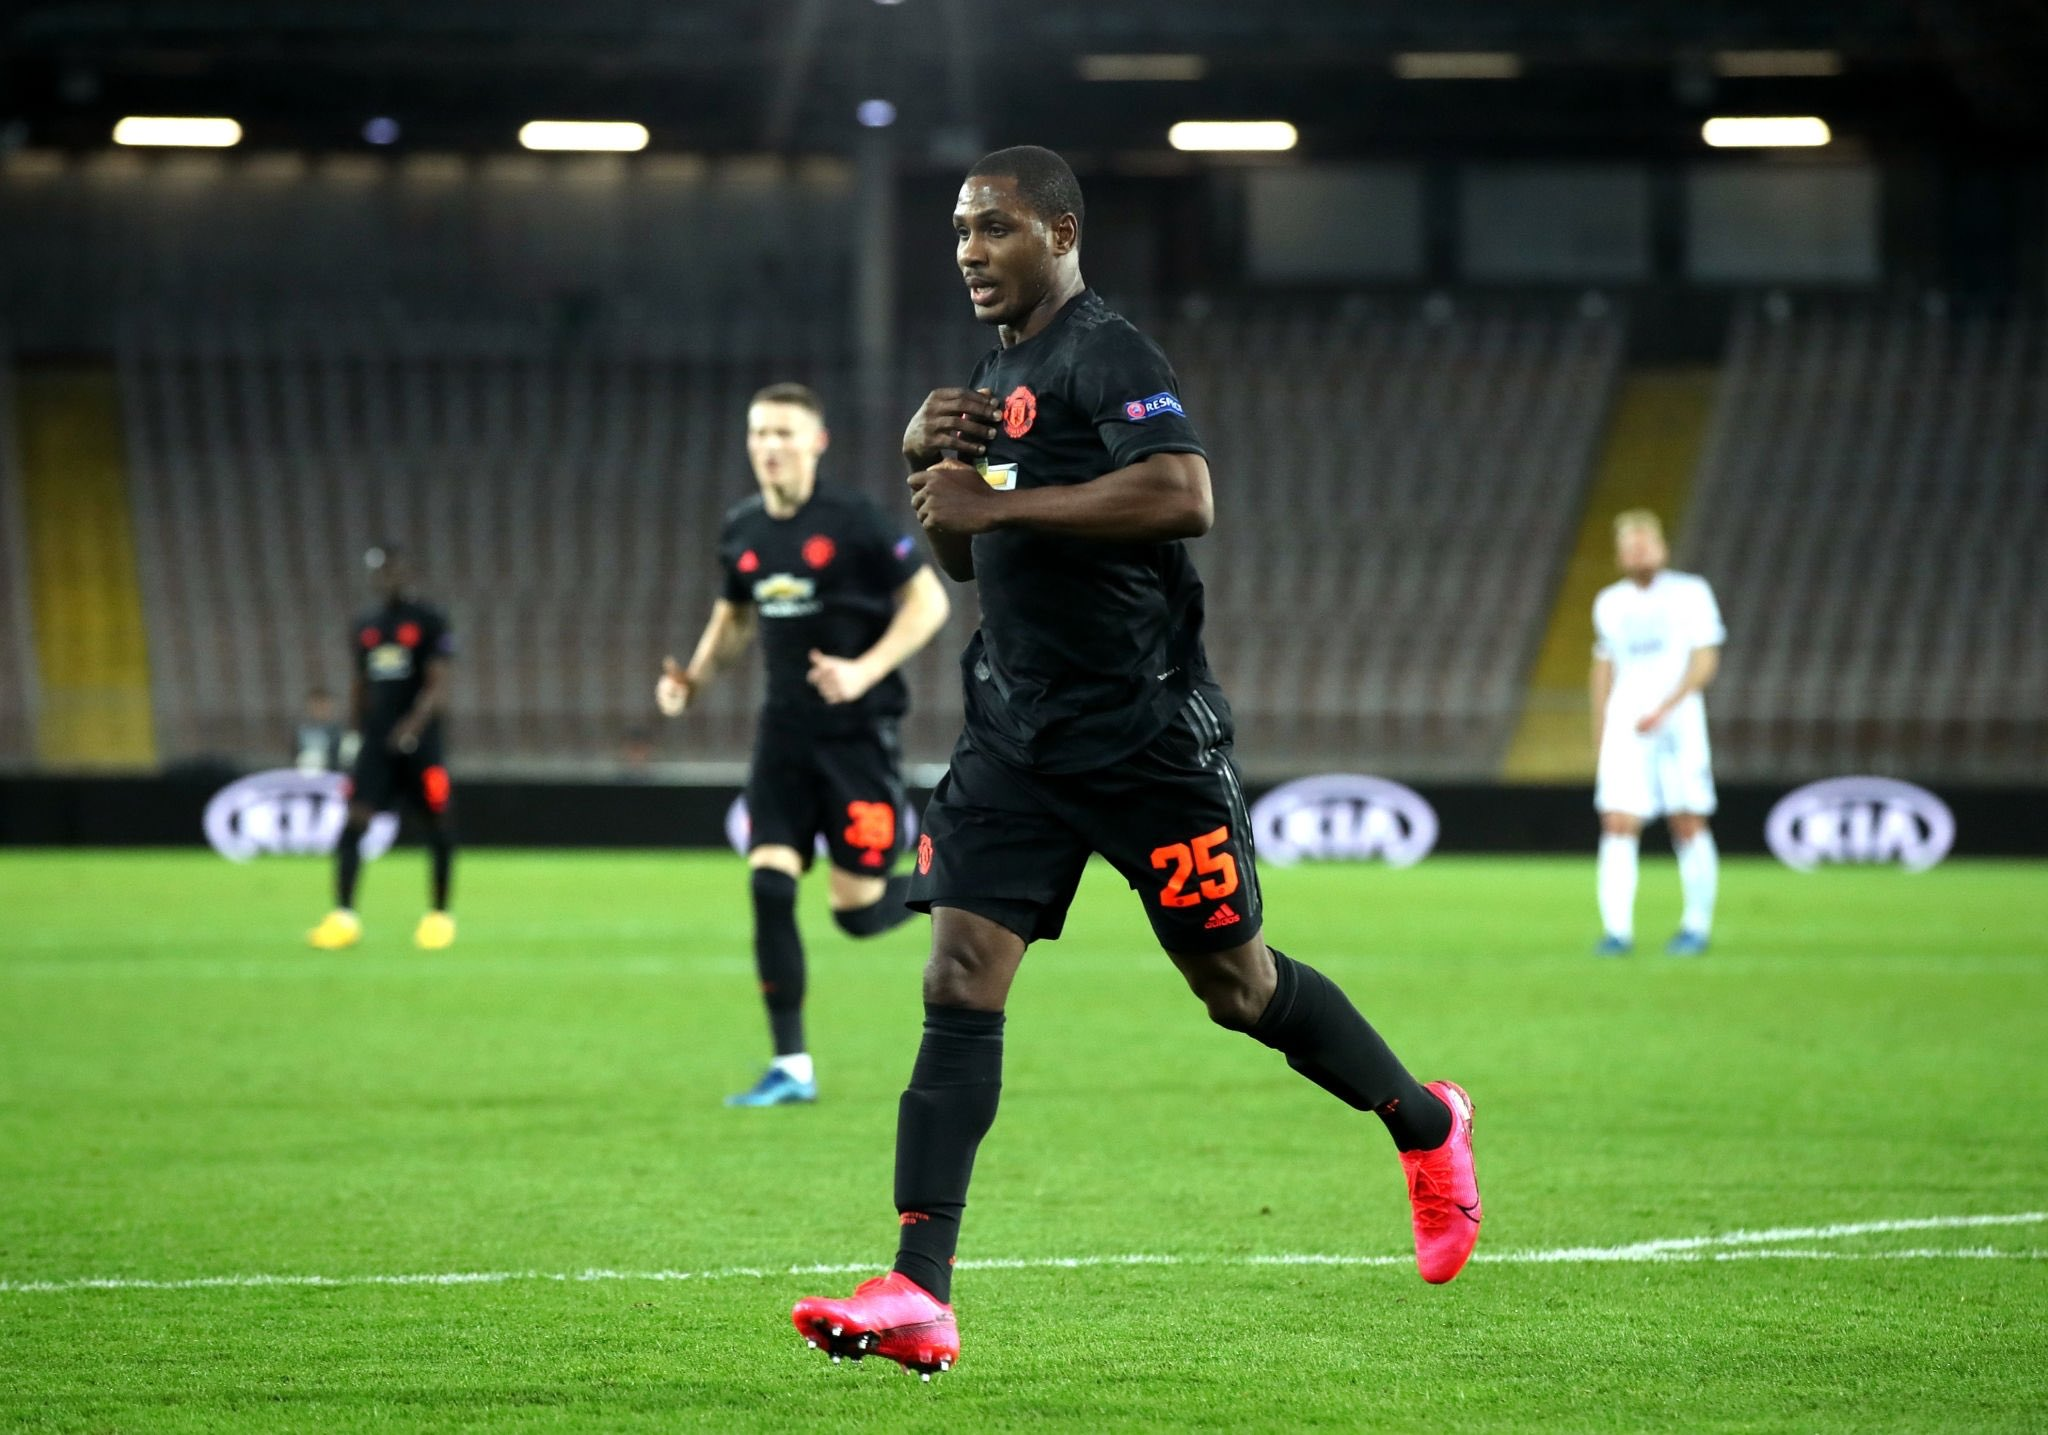 Man United Vs Chelsea: Ighalo Targets 6th FA Cup Goal In 10 Games